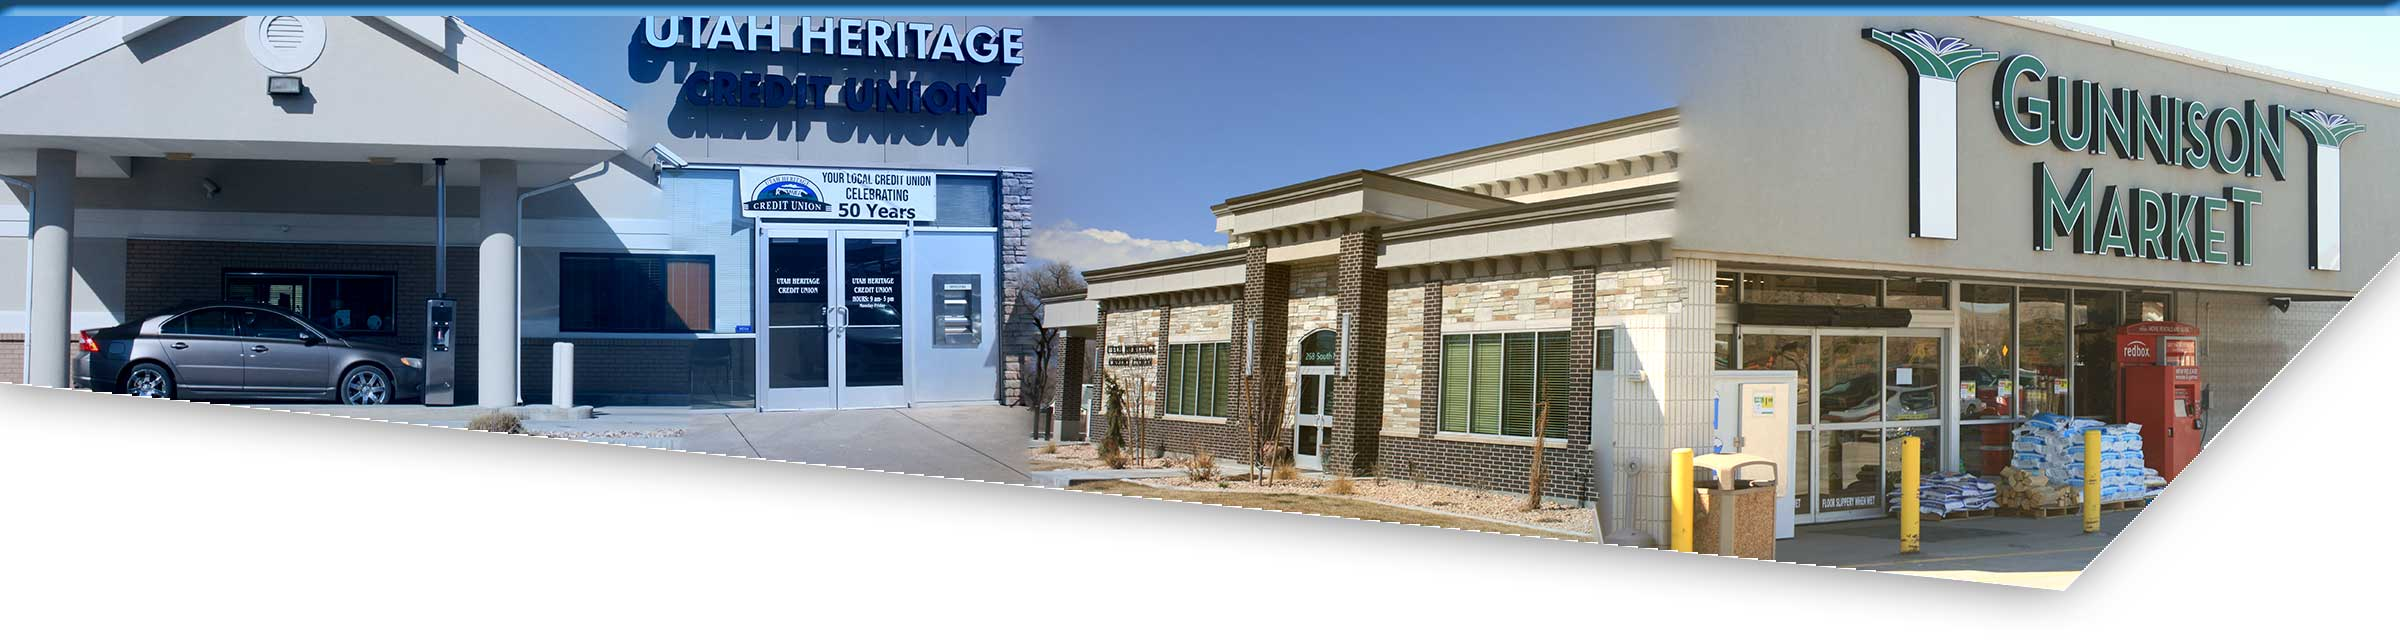 all 4 of the utah heritage branches